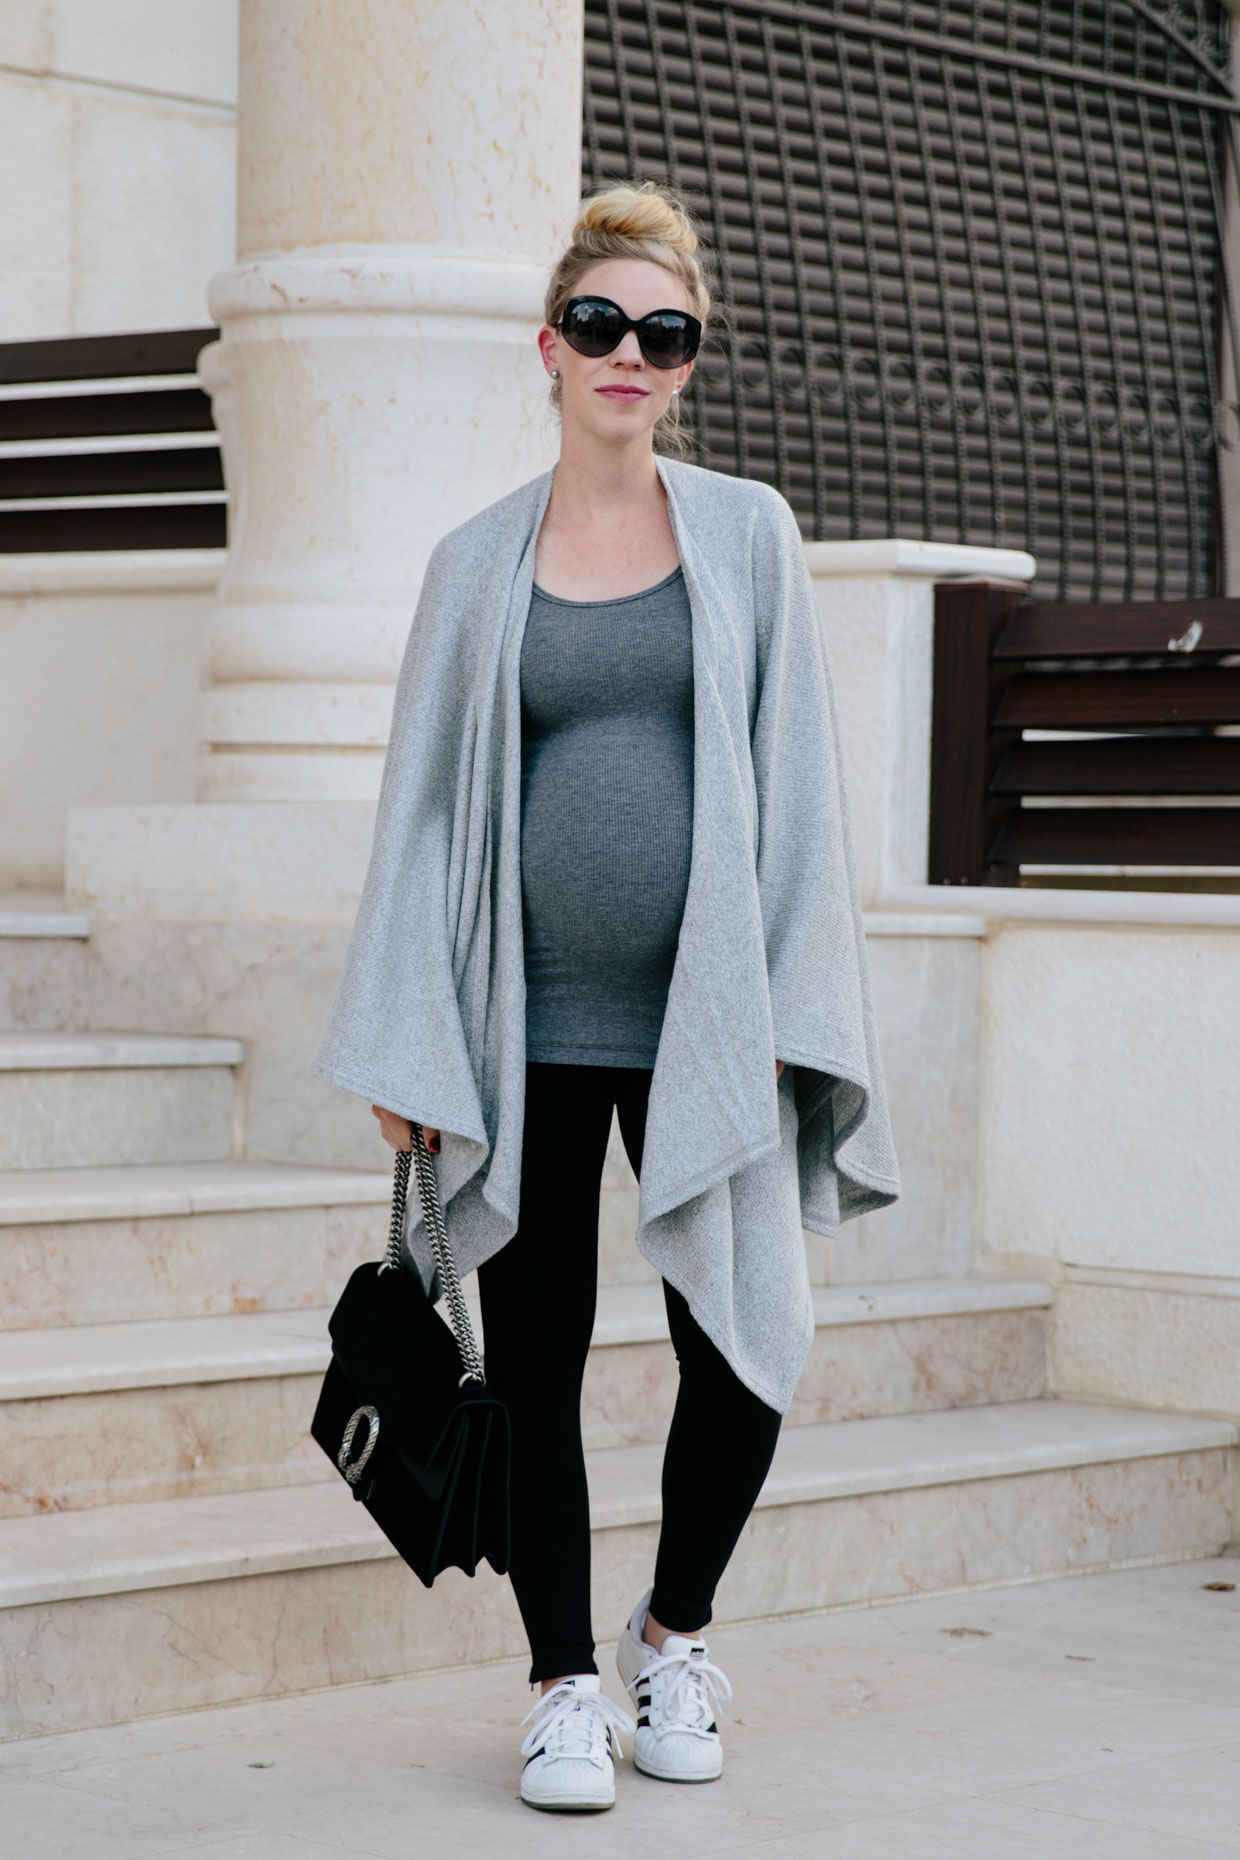 9cd9492194d0a Meagan Brandon fashion blogger wears comfy and chic maternity travel outfit  with Ingrid & Isabel leggings, nursing wrap poncho and Adidas Superstar  sneakers